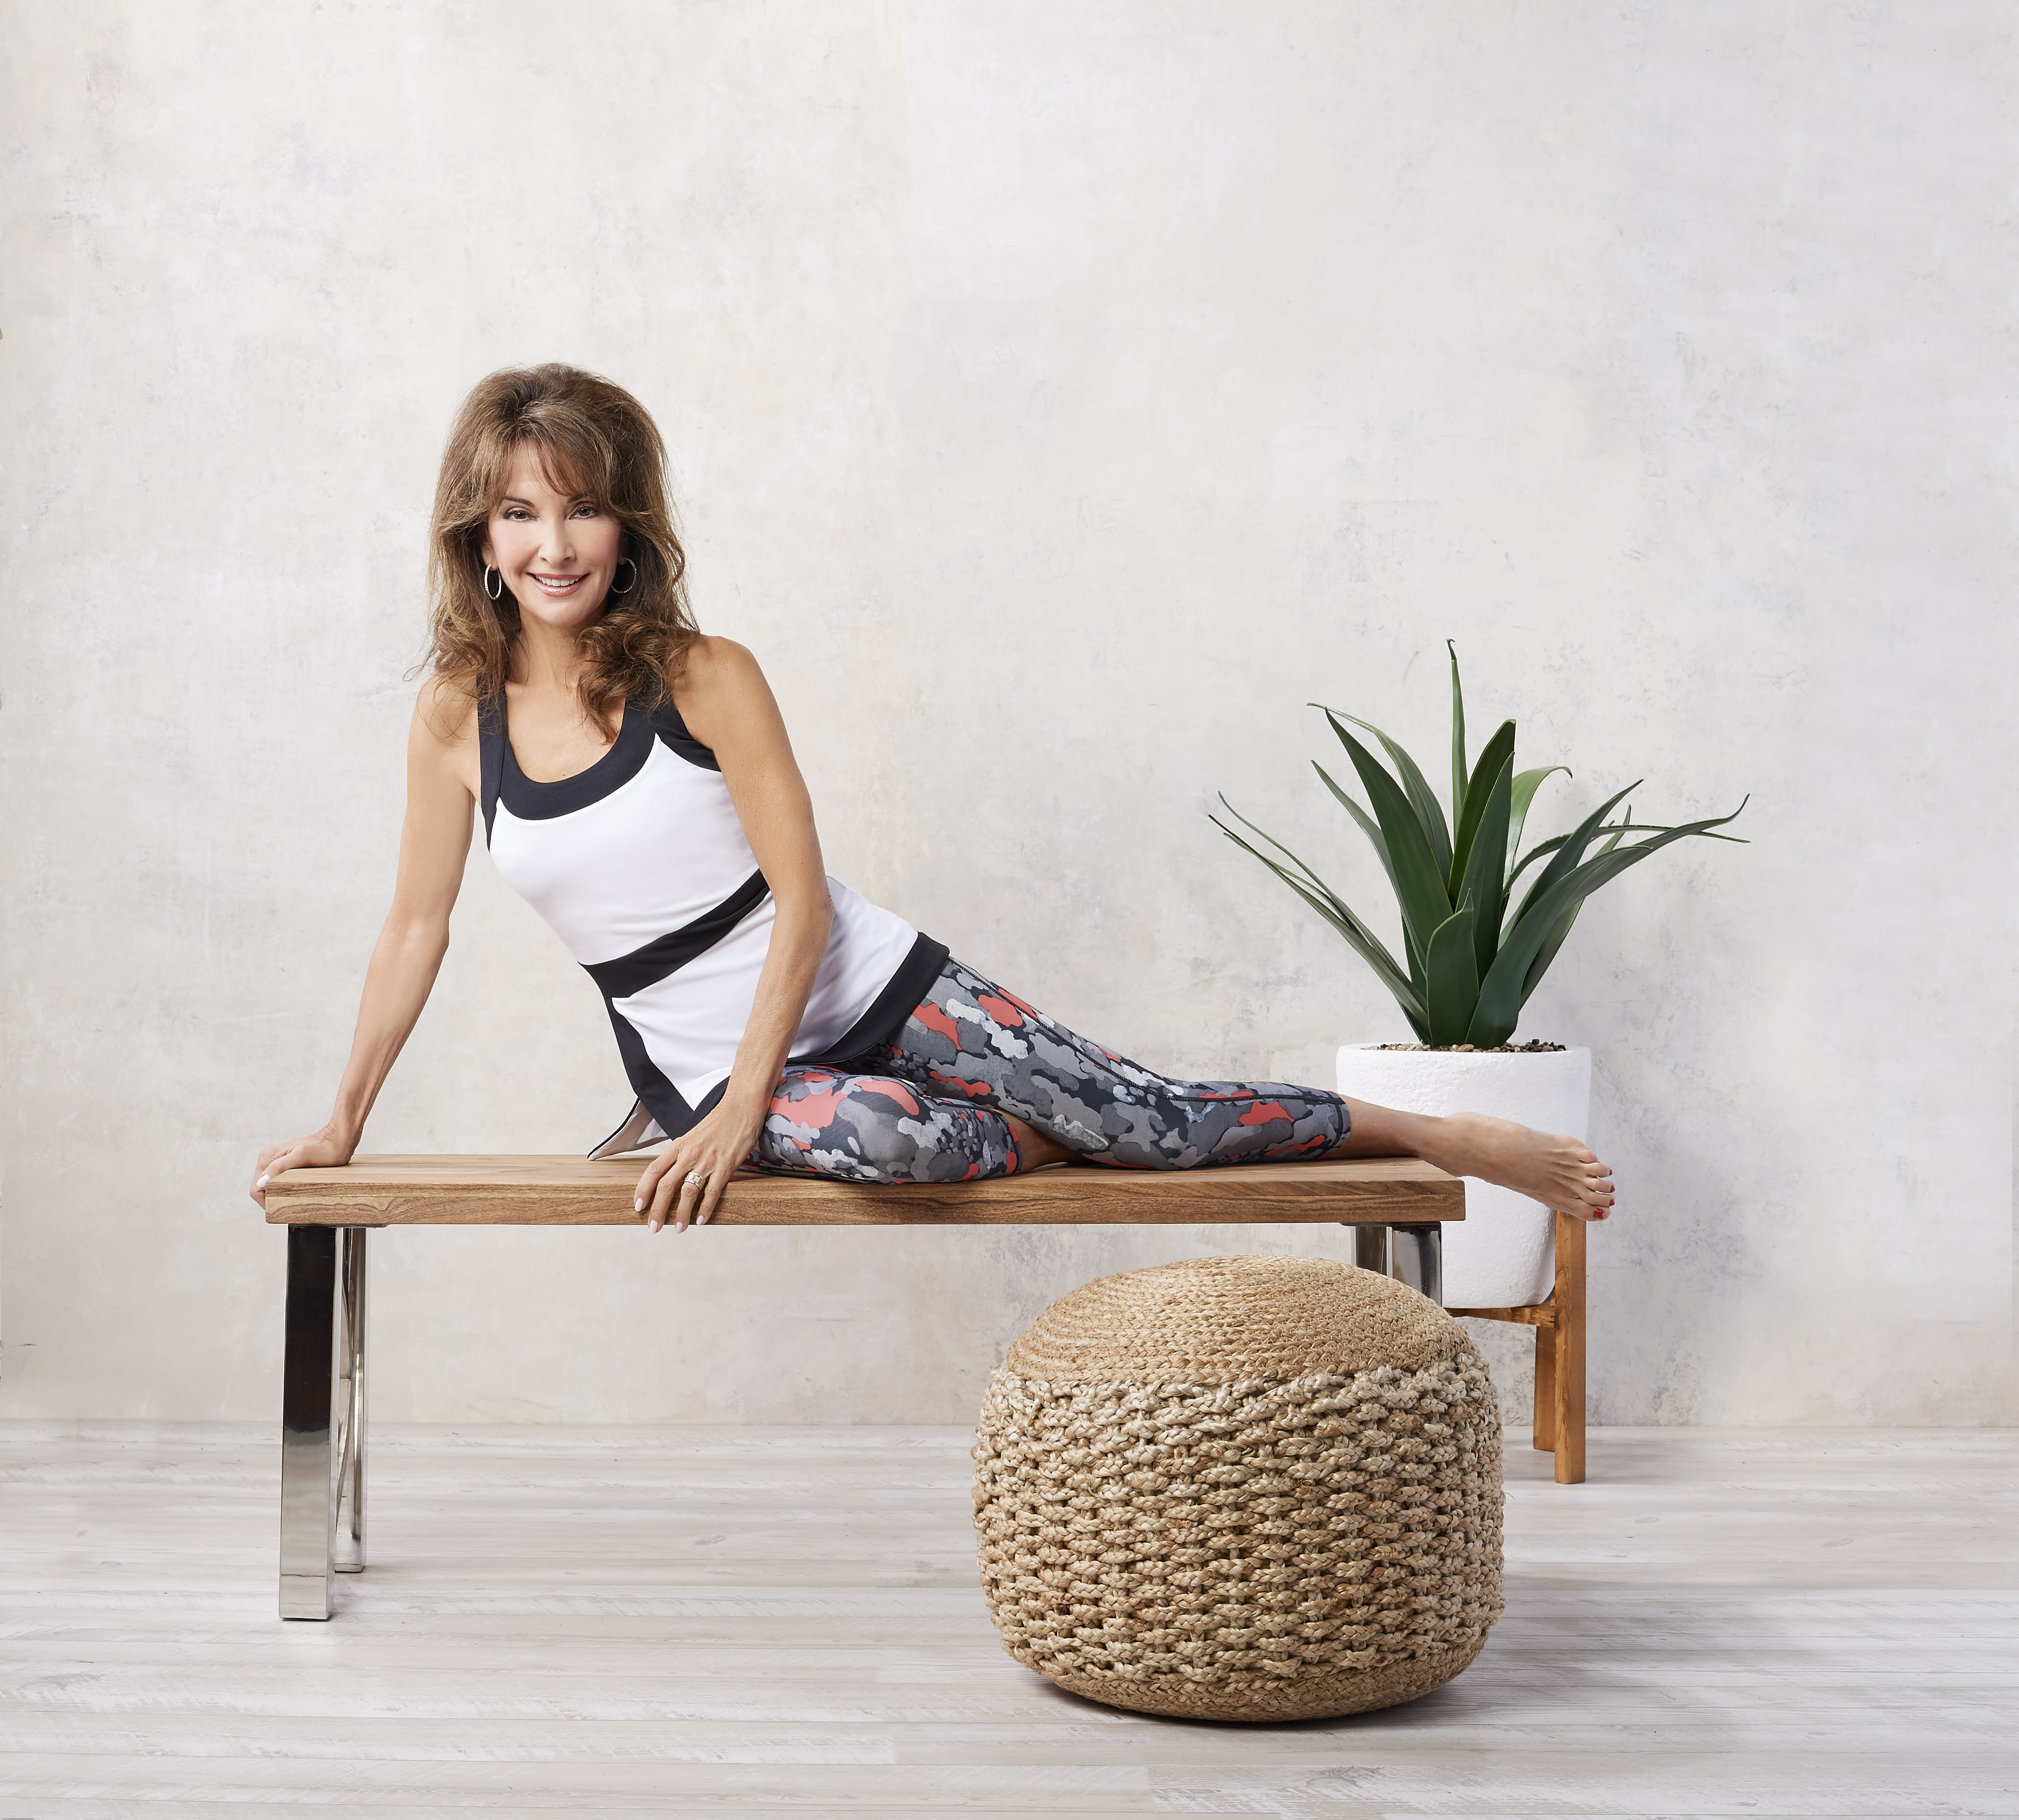 Pilates Chair Dvds Lifes Beach: Susan Lucci To Kick Off Signature Activewear Collection